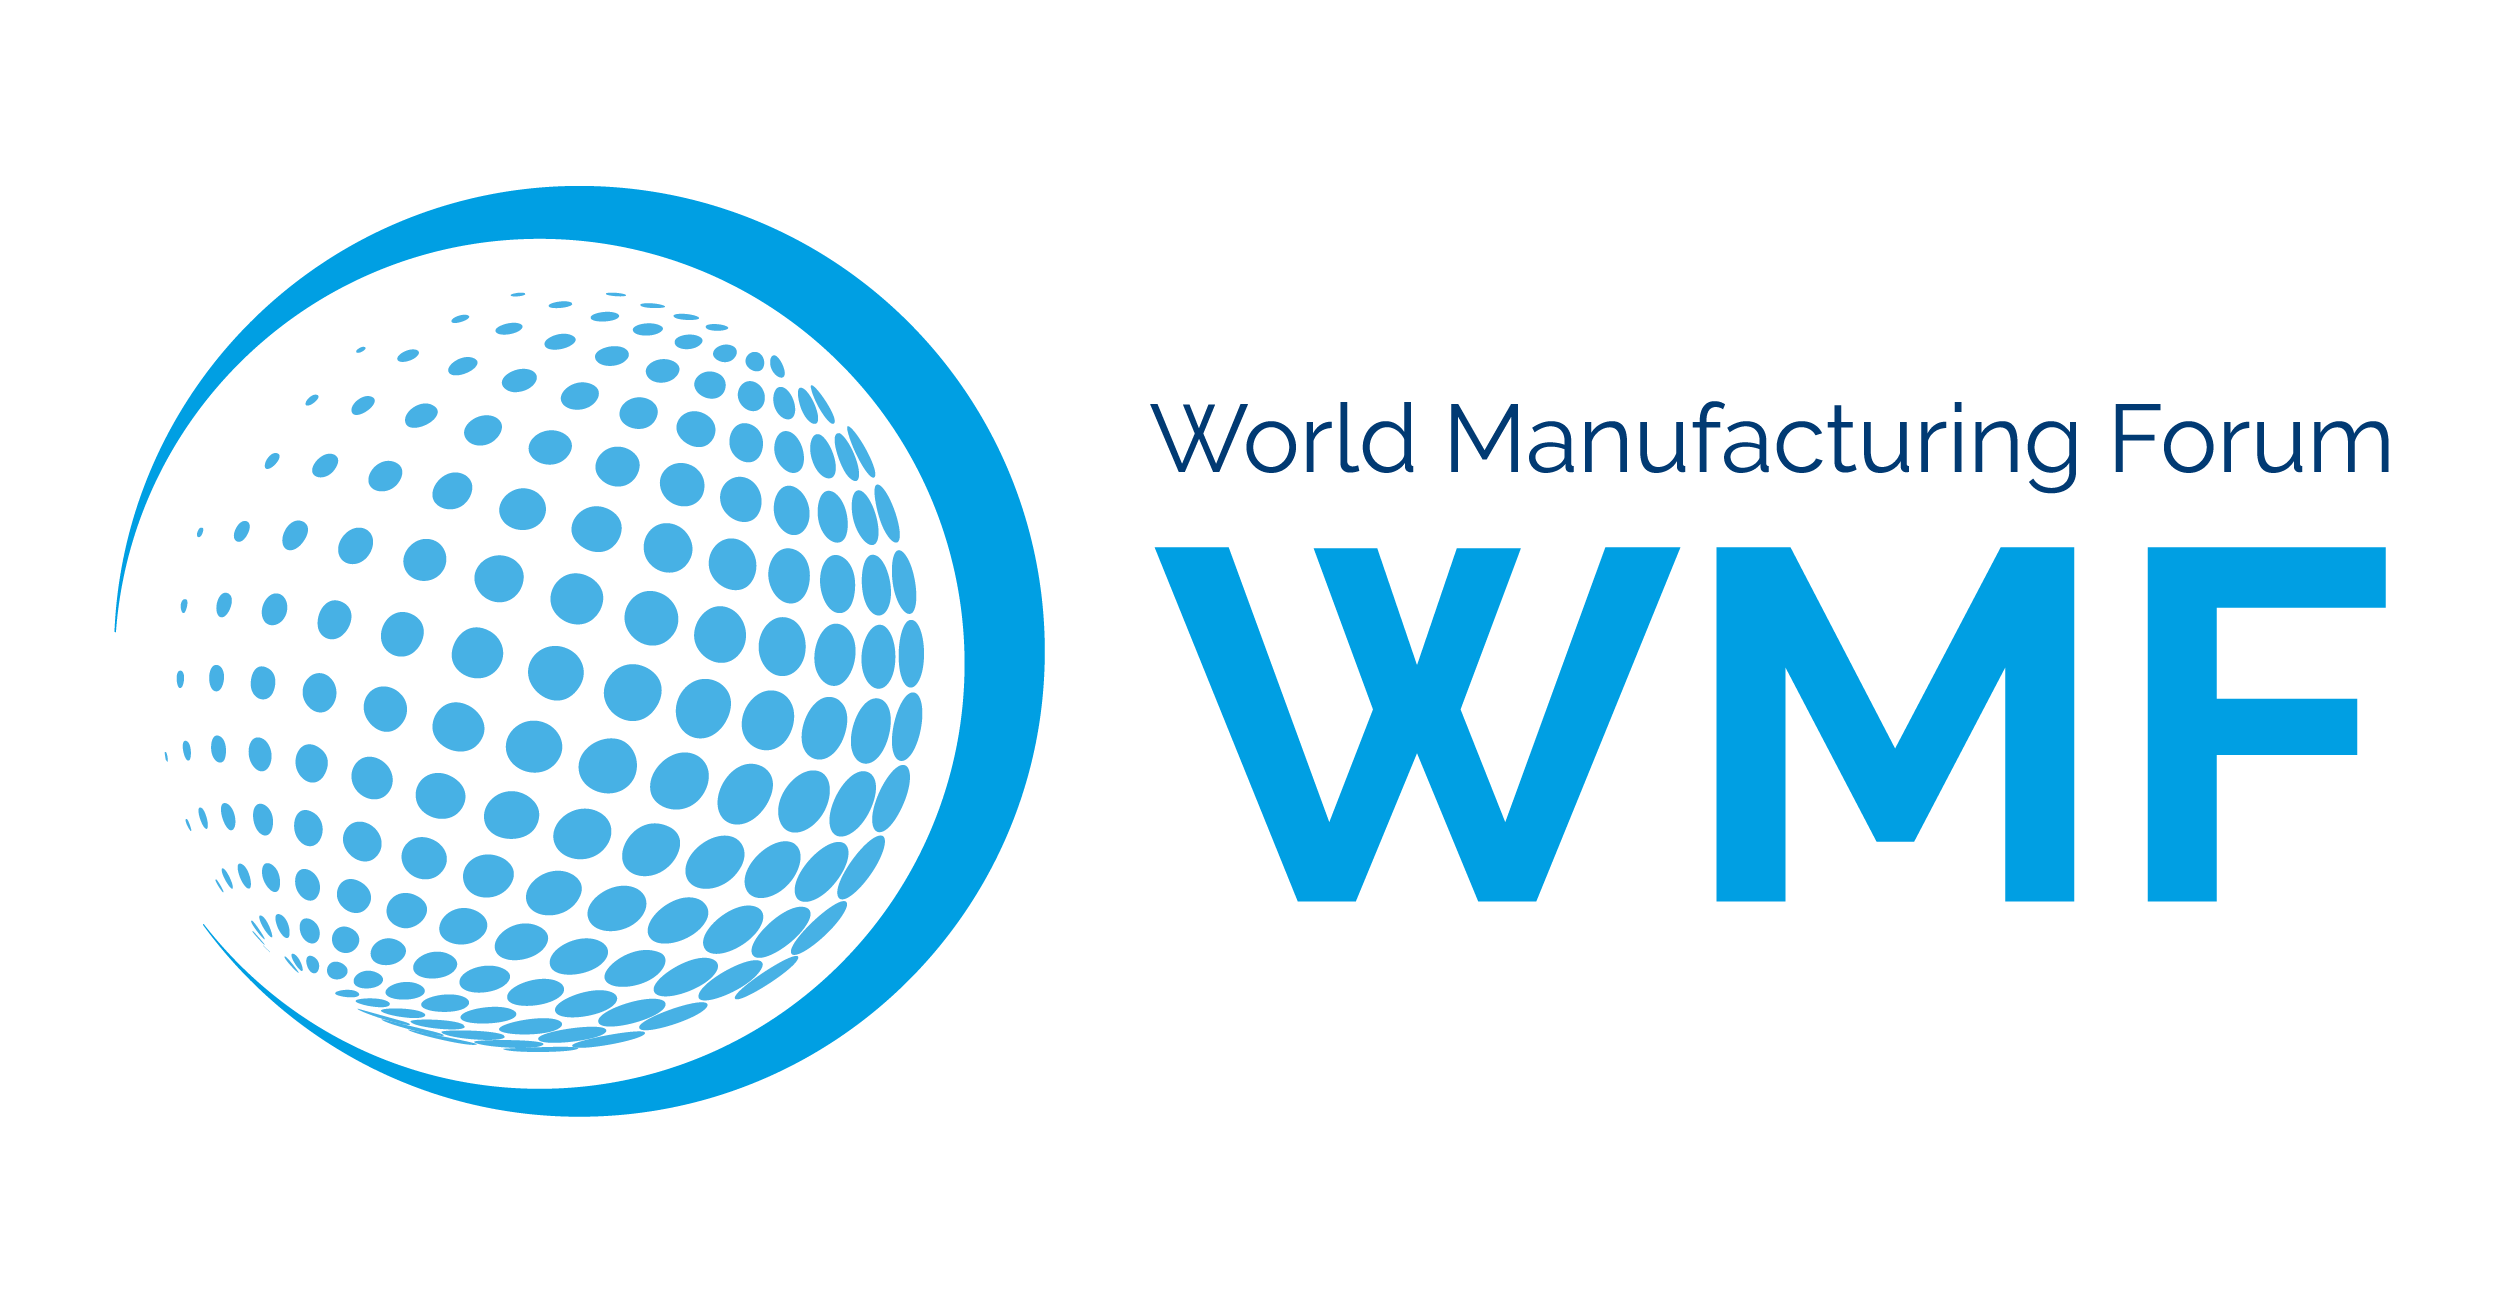 WMF | World Manufacturing Forum